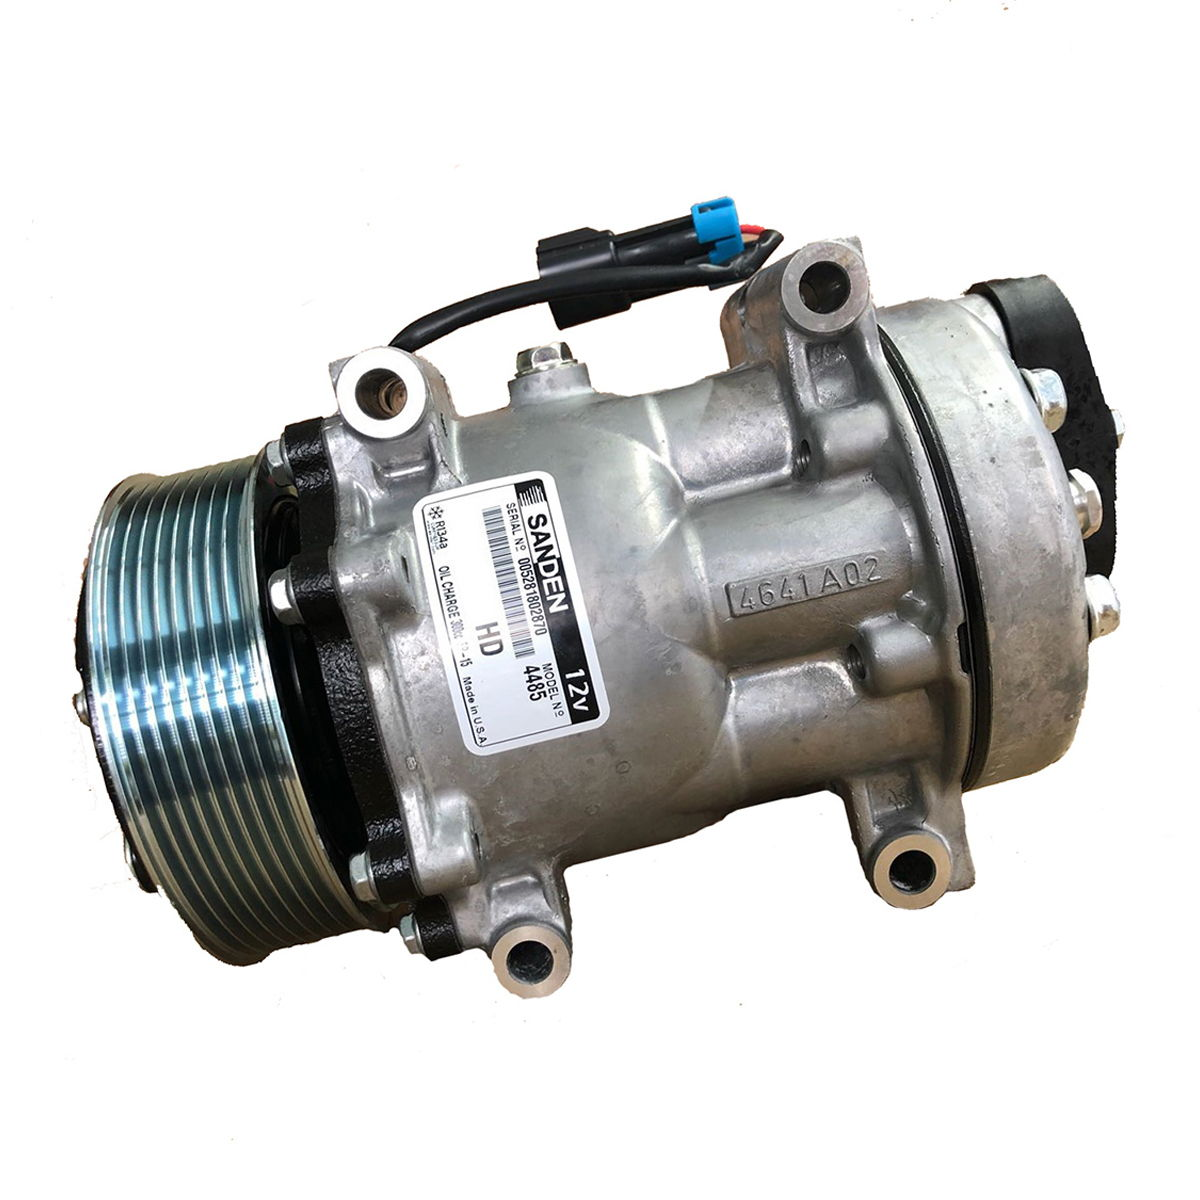 ORIGINAL SANDEN, A/C Compressor 4485 with  clutch